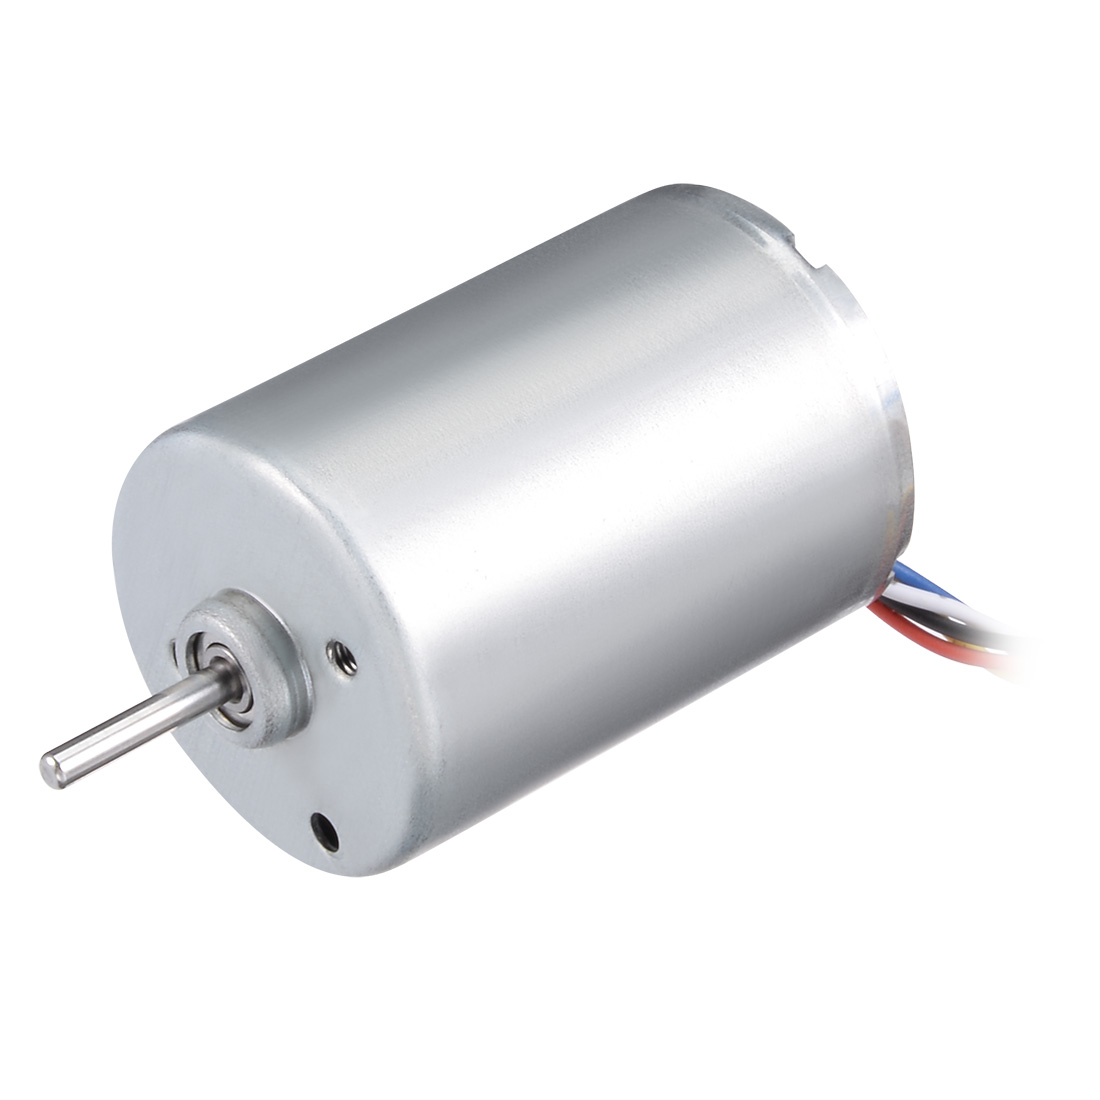 Micro Motor DC 12V 6000RPM 5 Wire High Speed Electric Motor for DIY Toy Cars